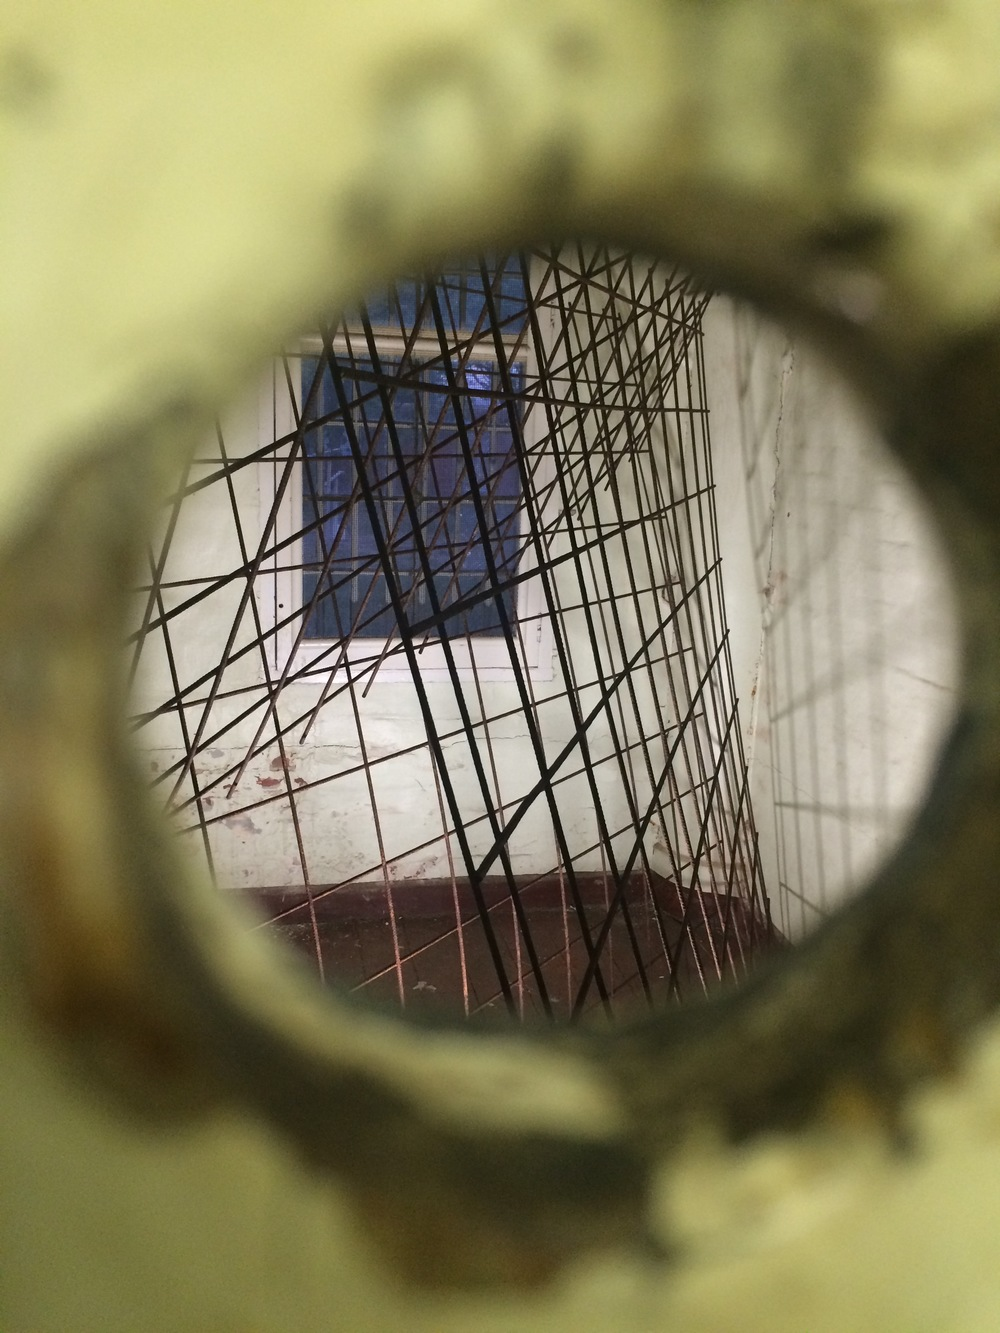 Jane Skeer   Trapped   2015  weldmesh through peephole